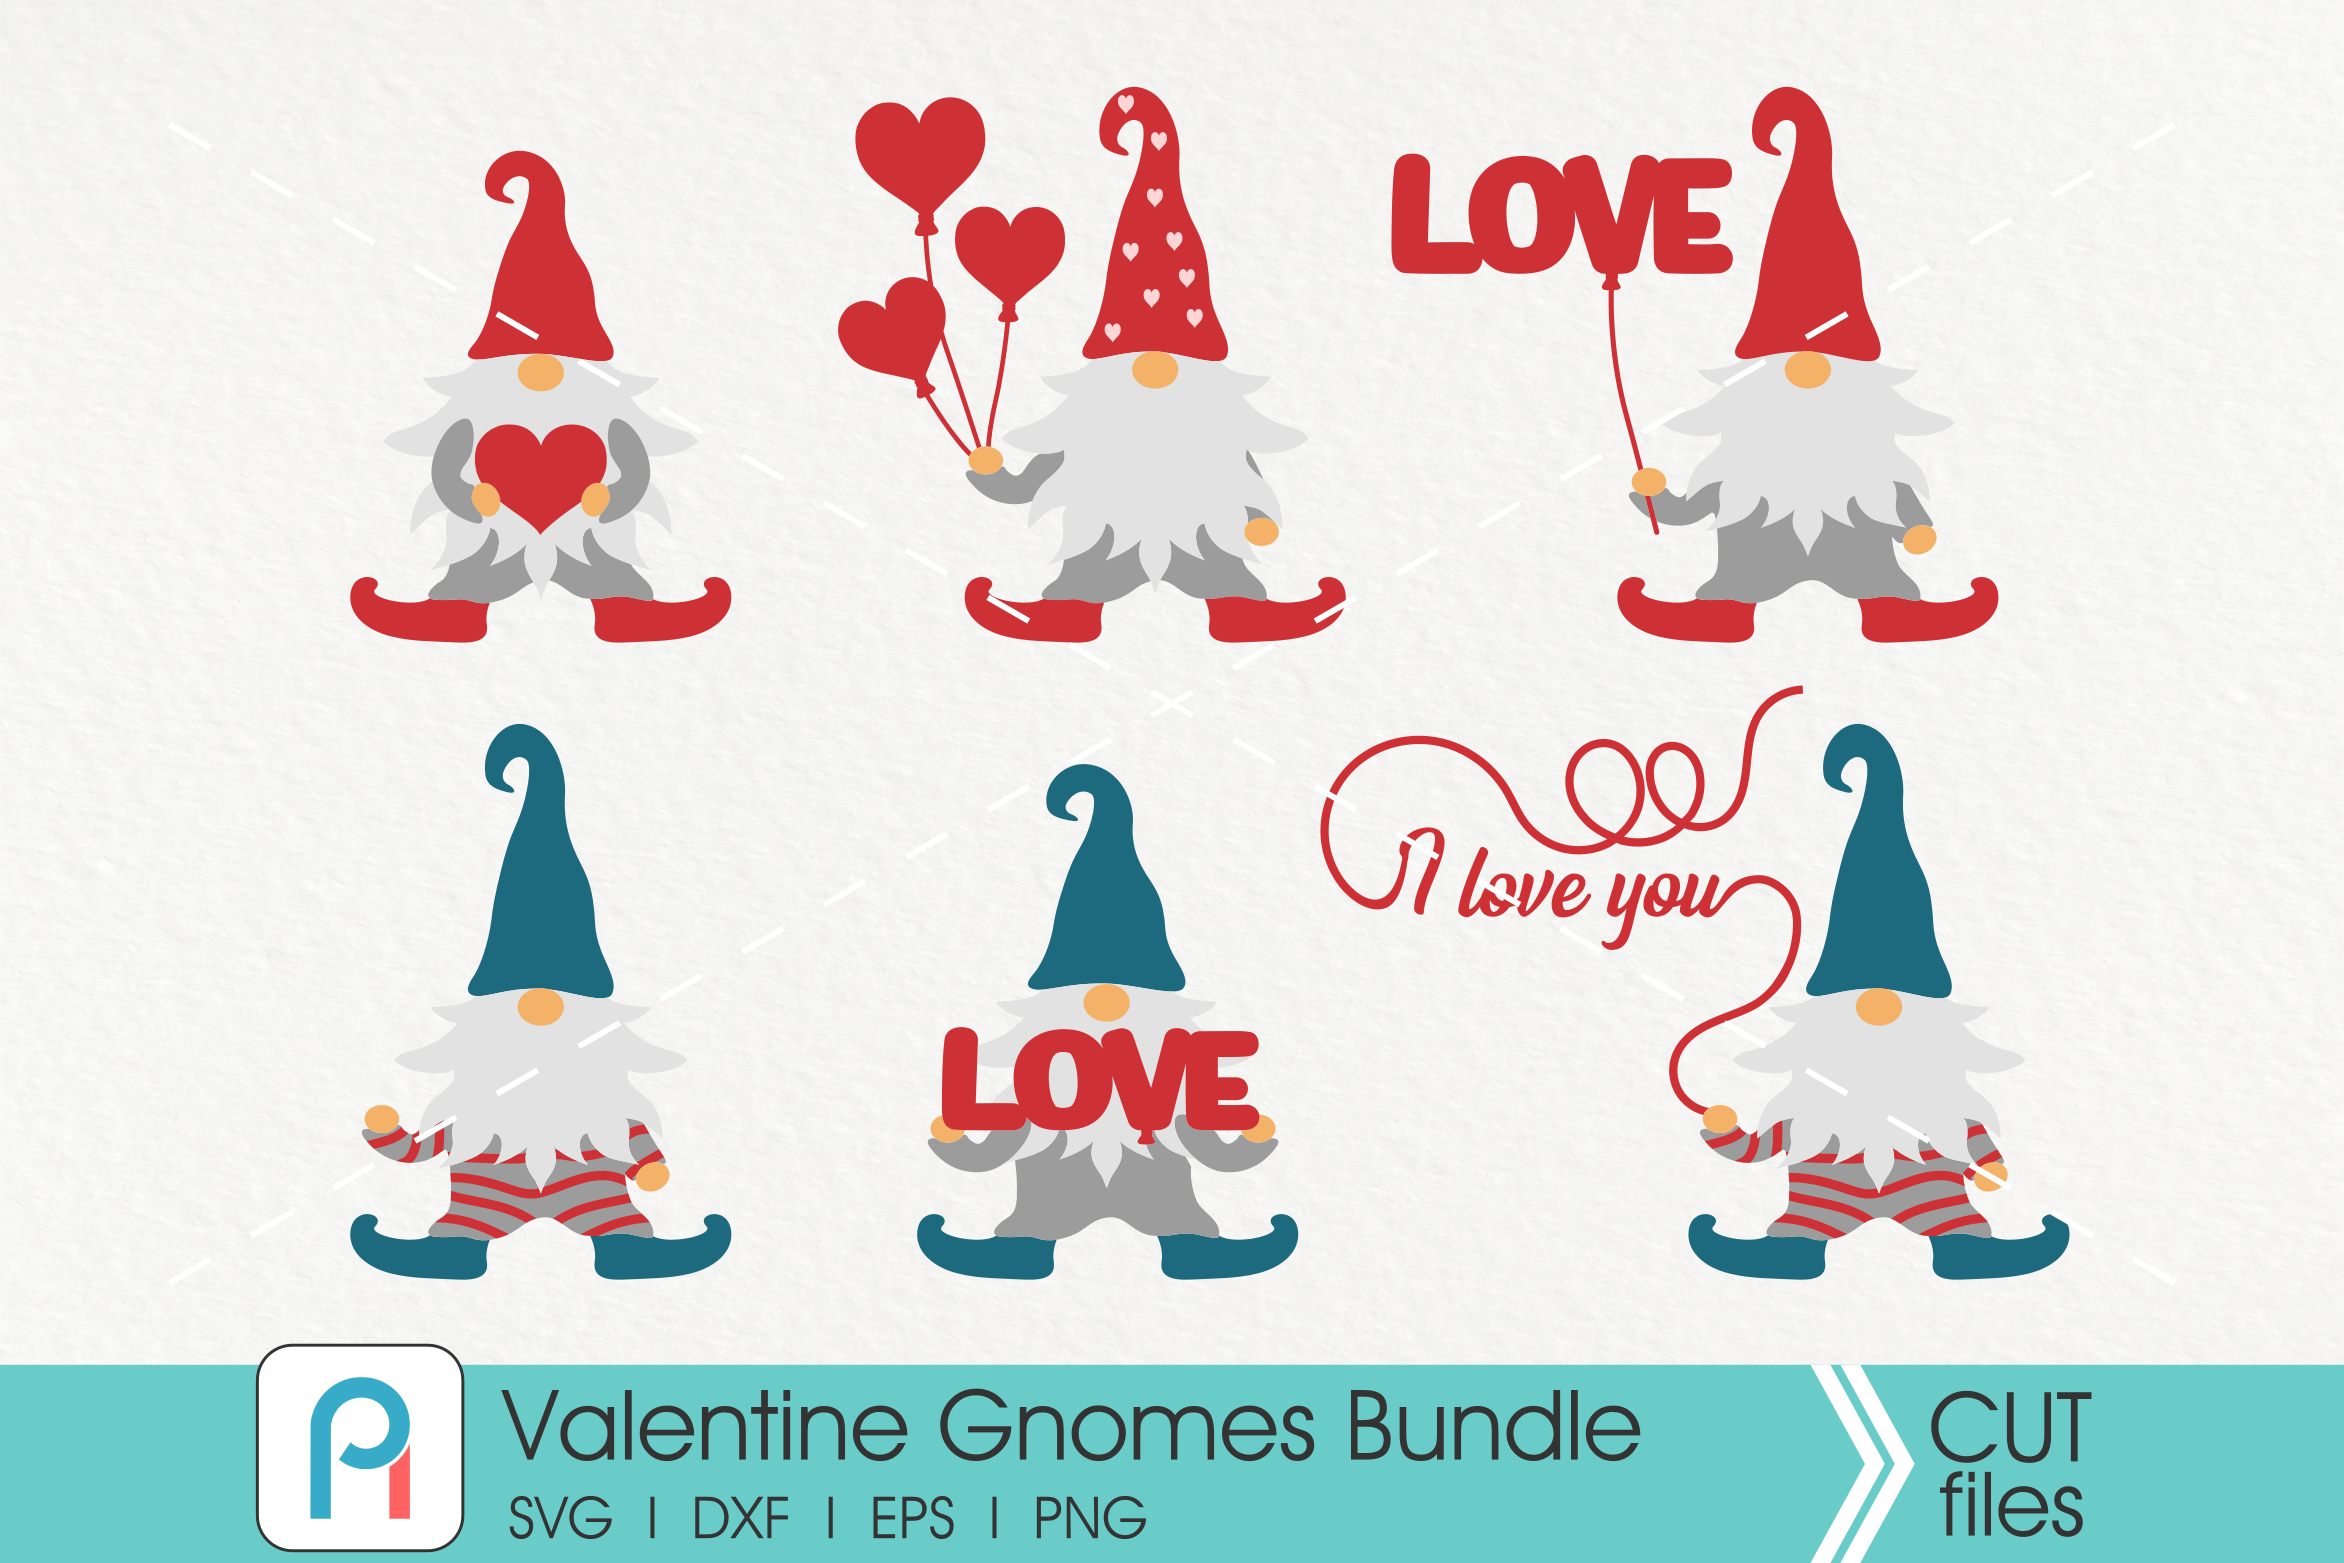 Download Free Valentine Gnomes Bundle Graphic By Pinoyartkreatib Creative Fabrica for Cricut Explore, Silhouette and other cutting machines.